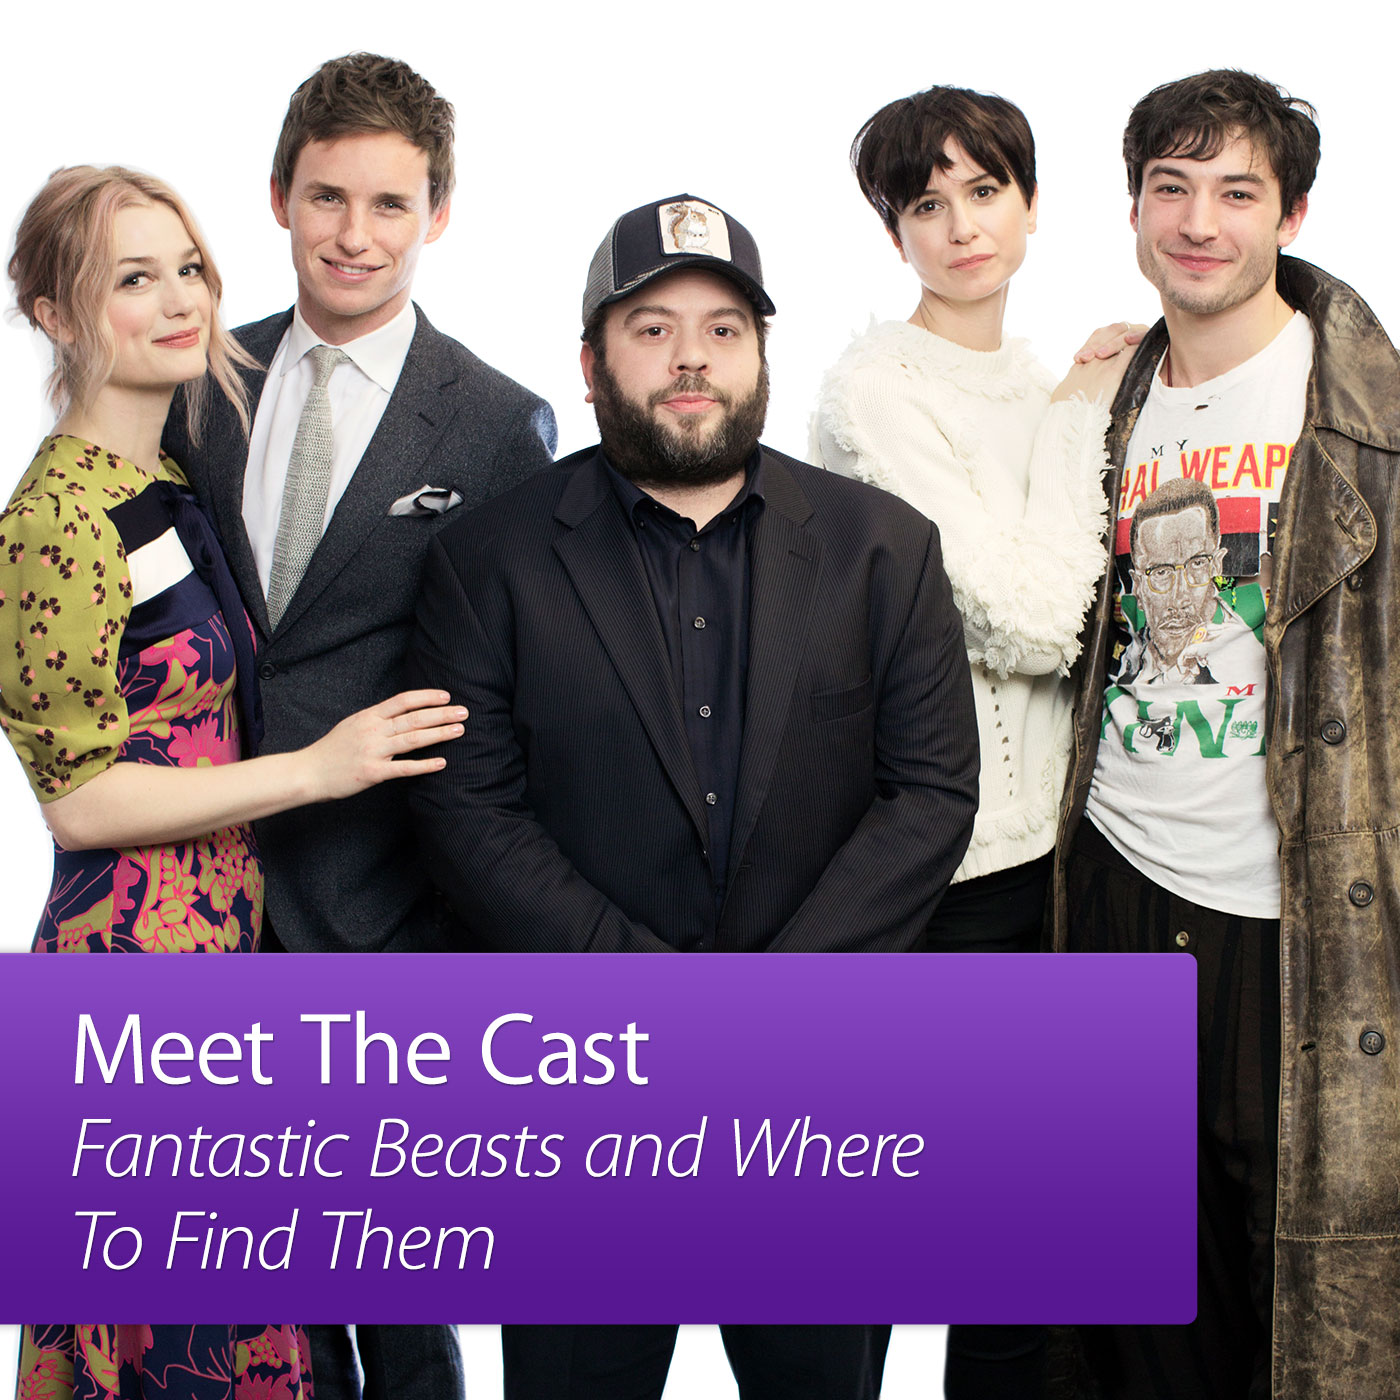 Fantastic Beasts and Where to Find Them: Meet the Cast